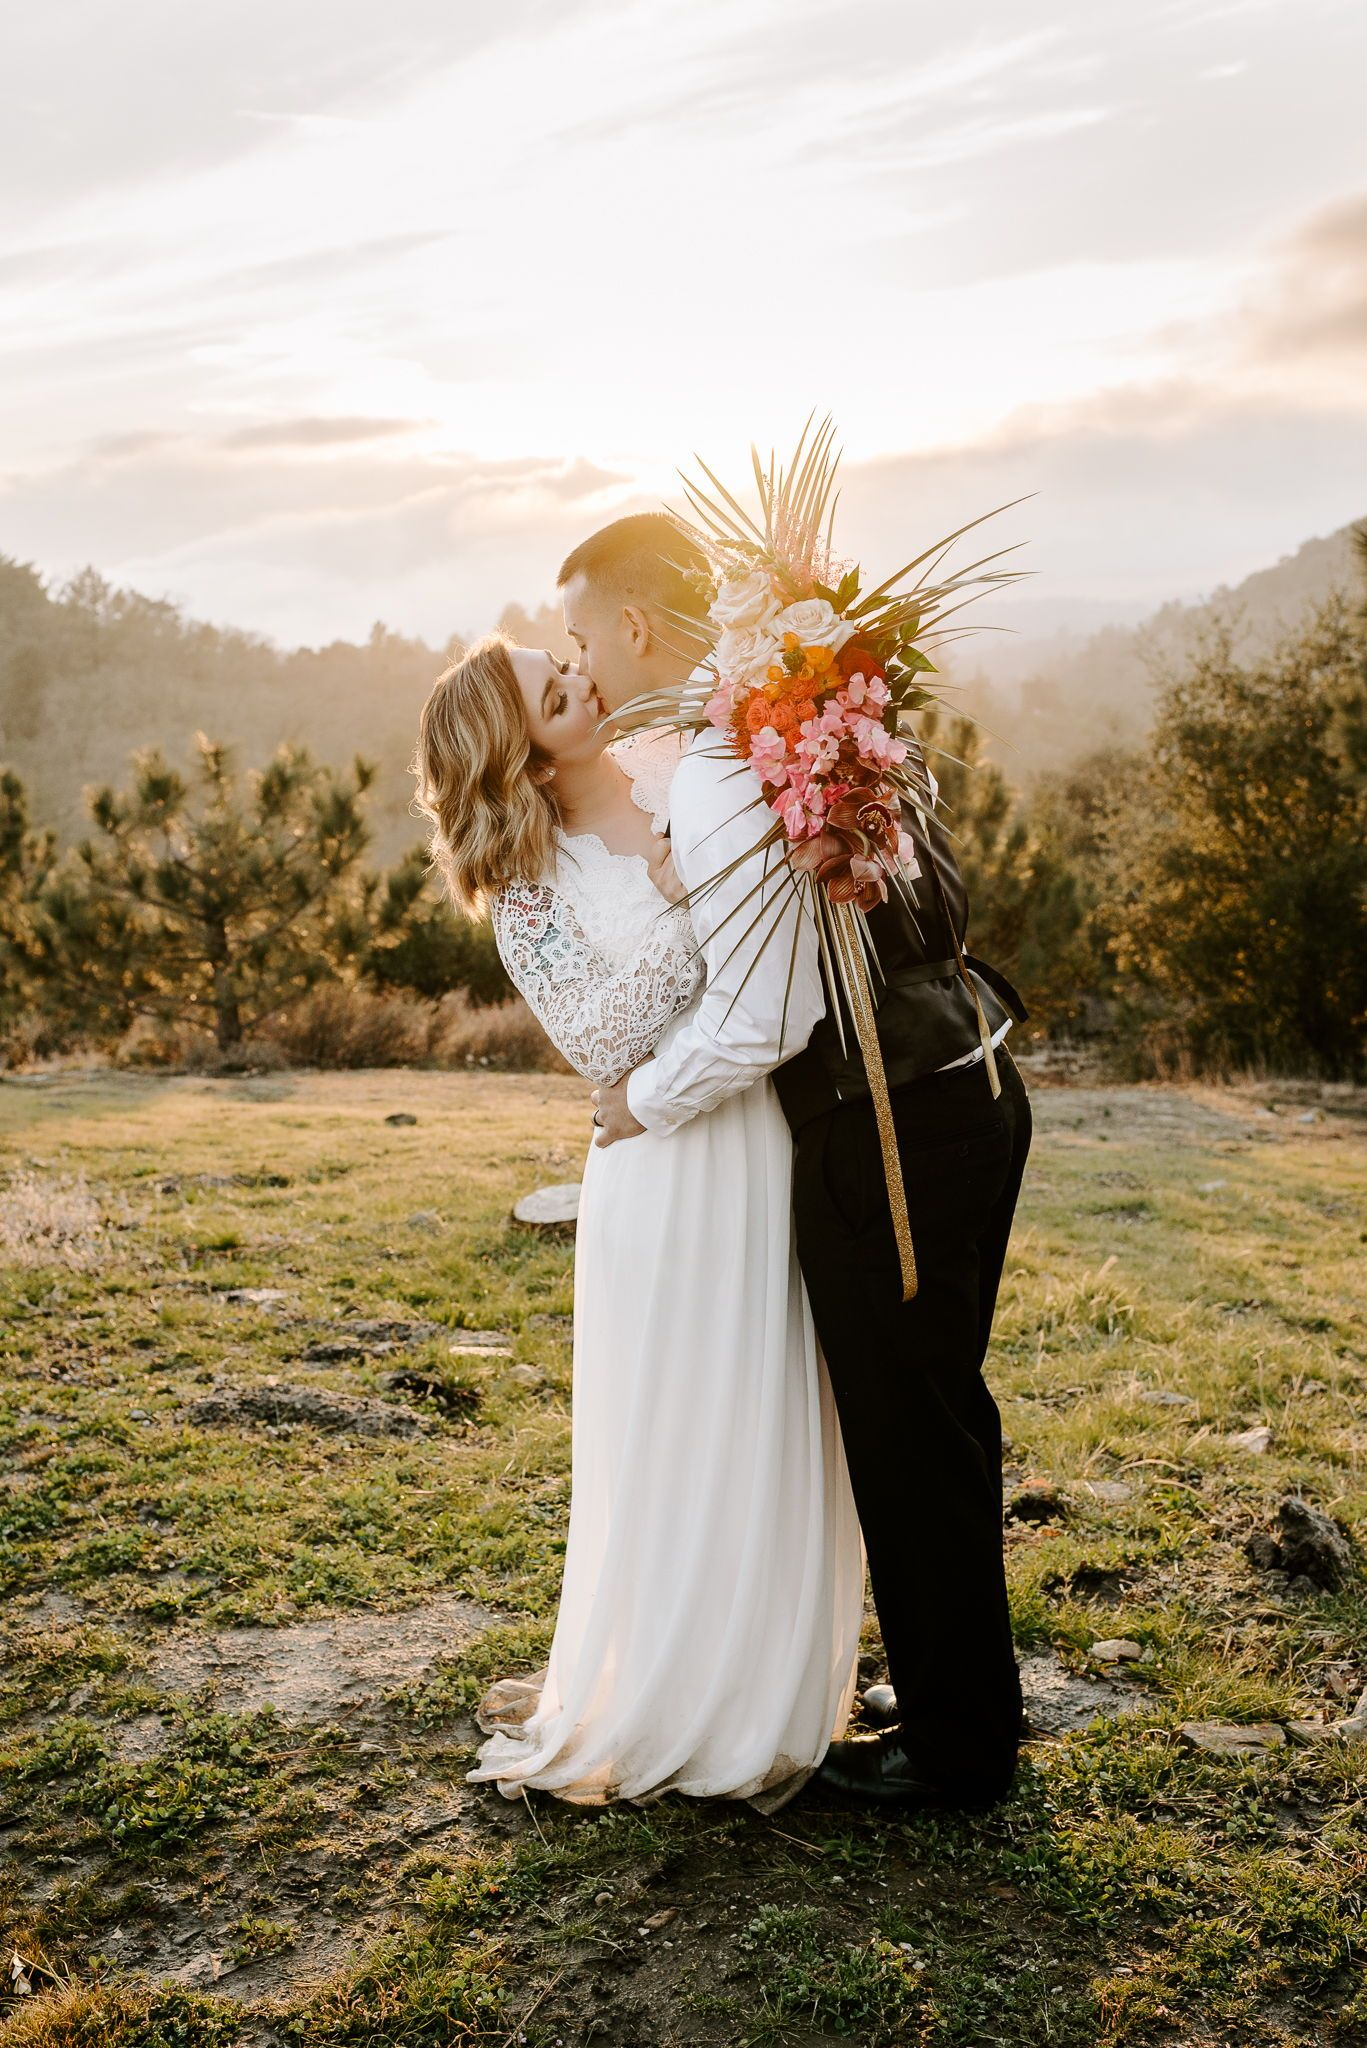 How much does it cost to elope courtney lynn in 2020